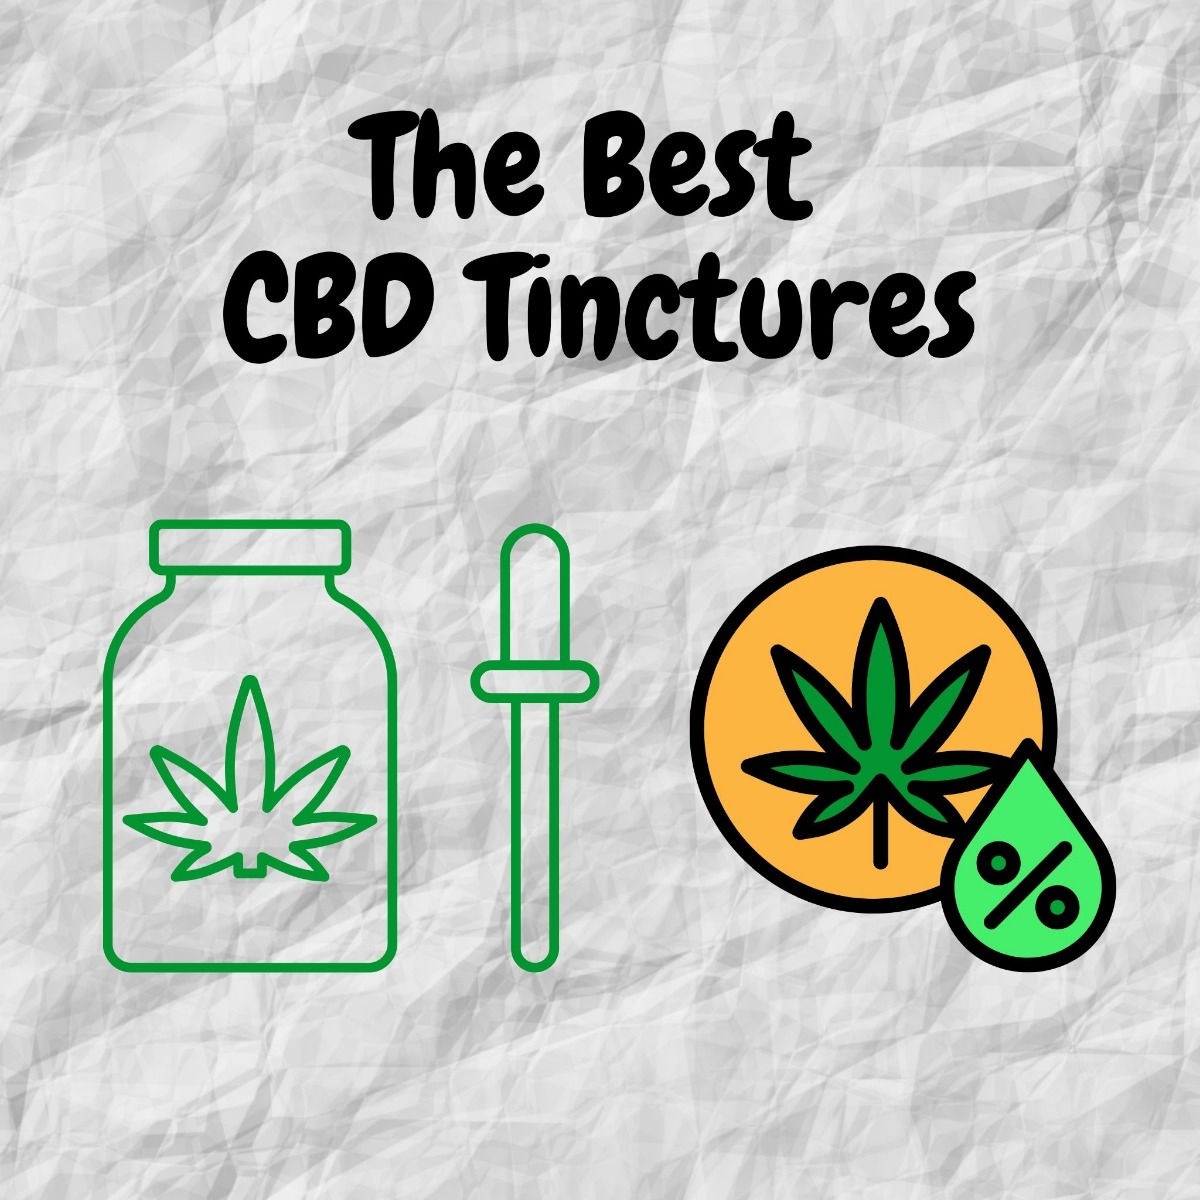 Green cbd tincture bottle with text saying The Basics of CBD Tinctures